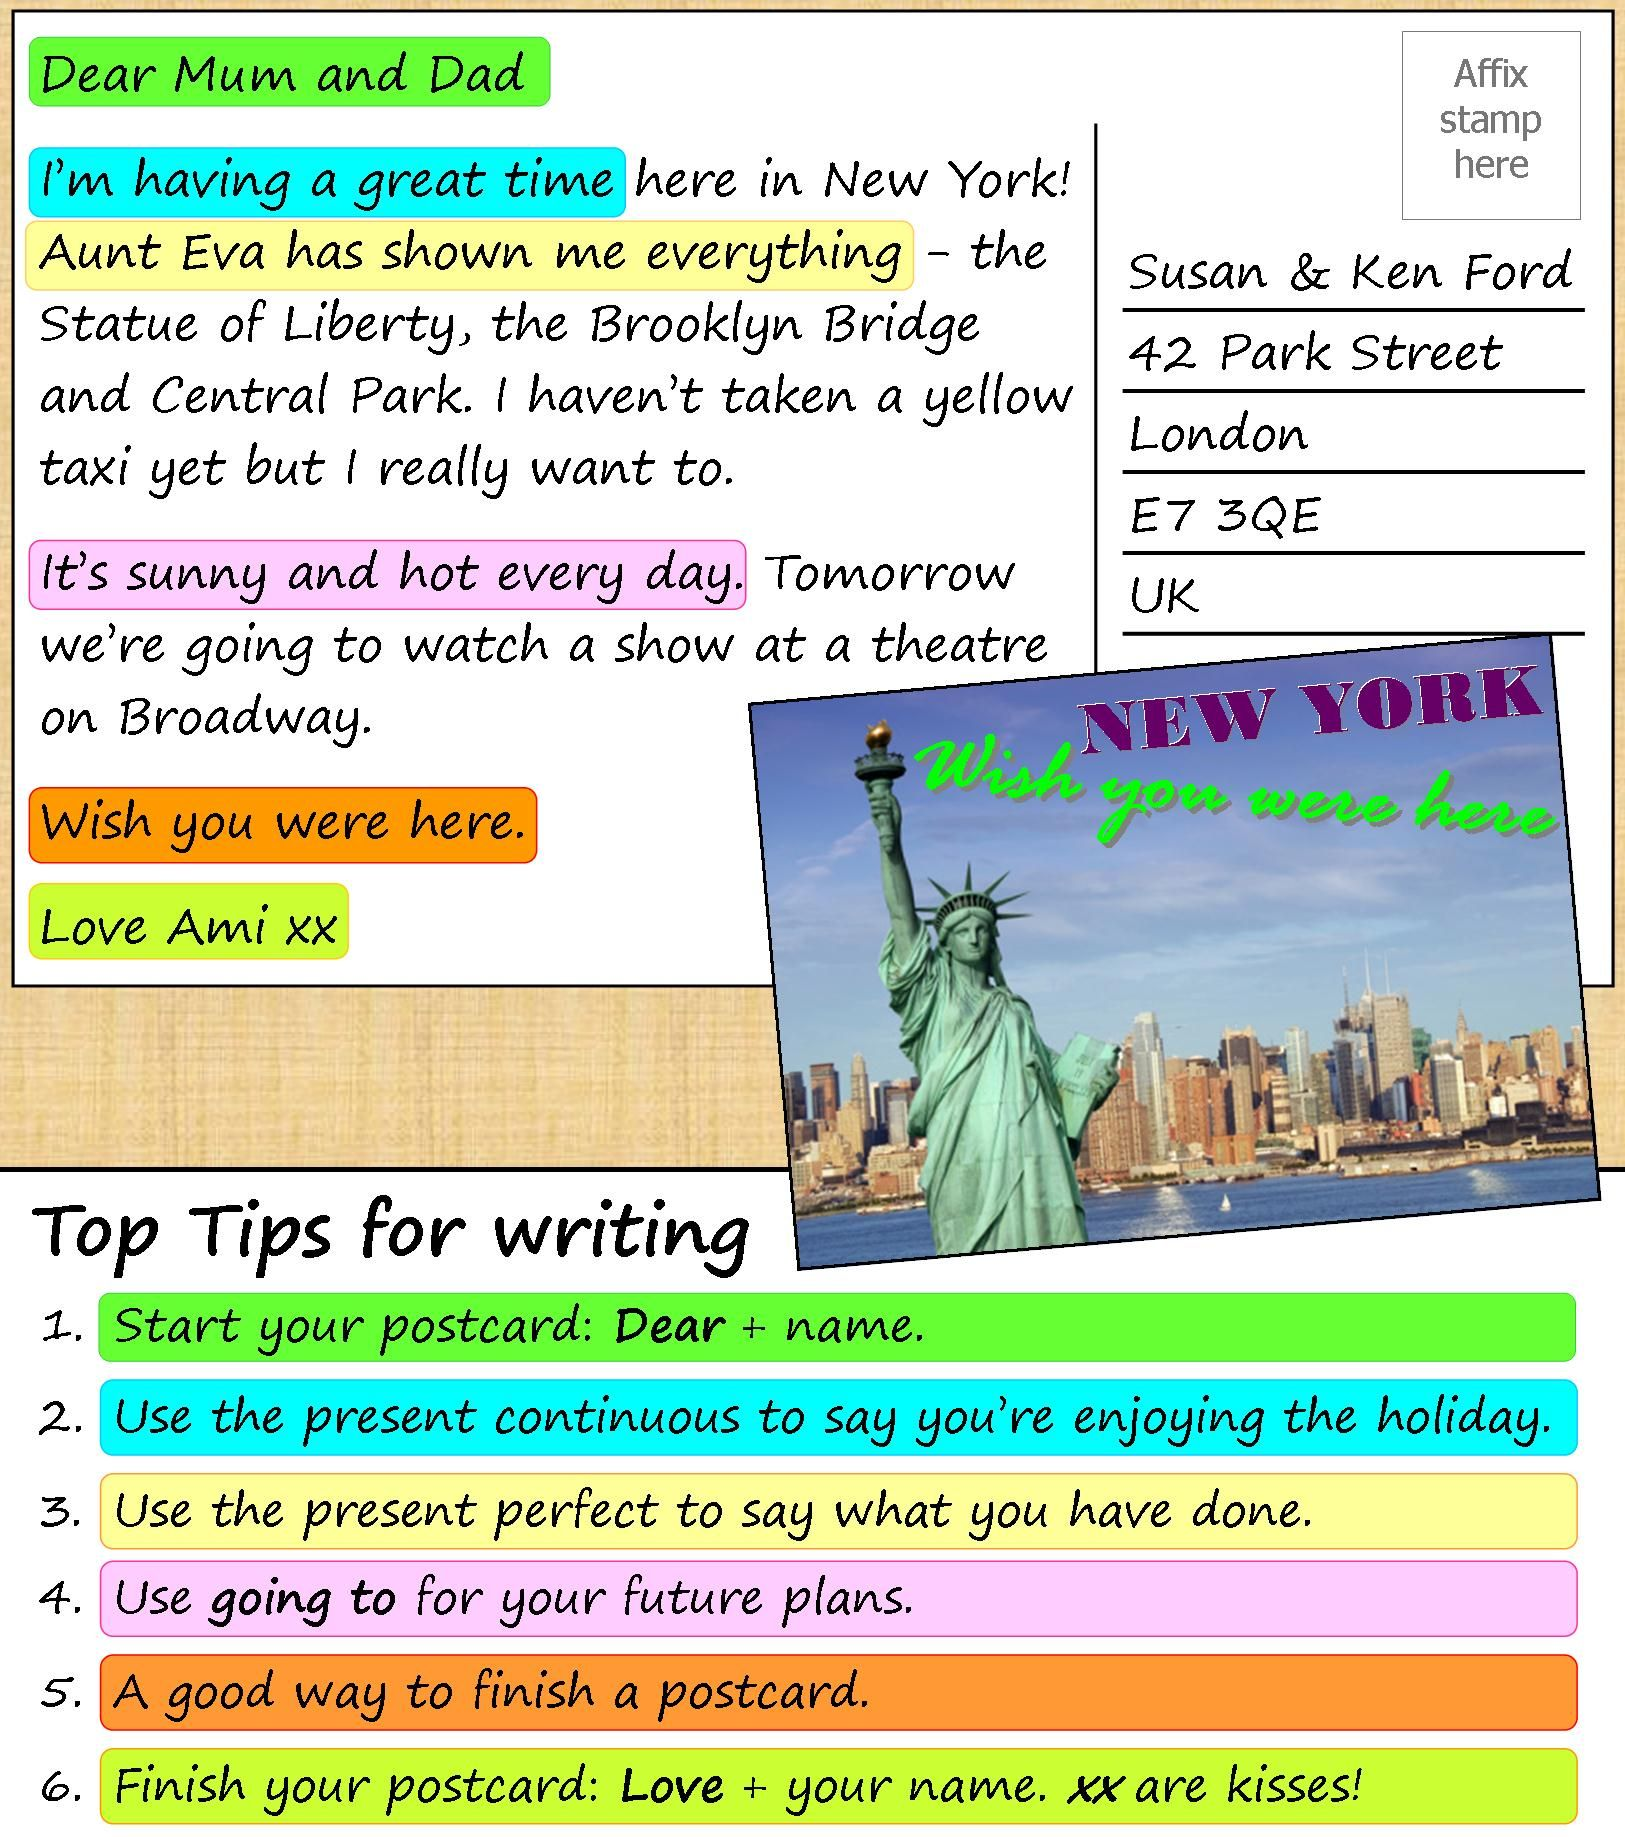 A Postcard From New York